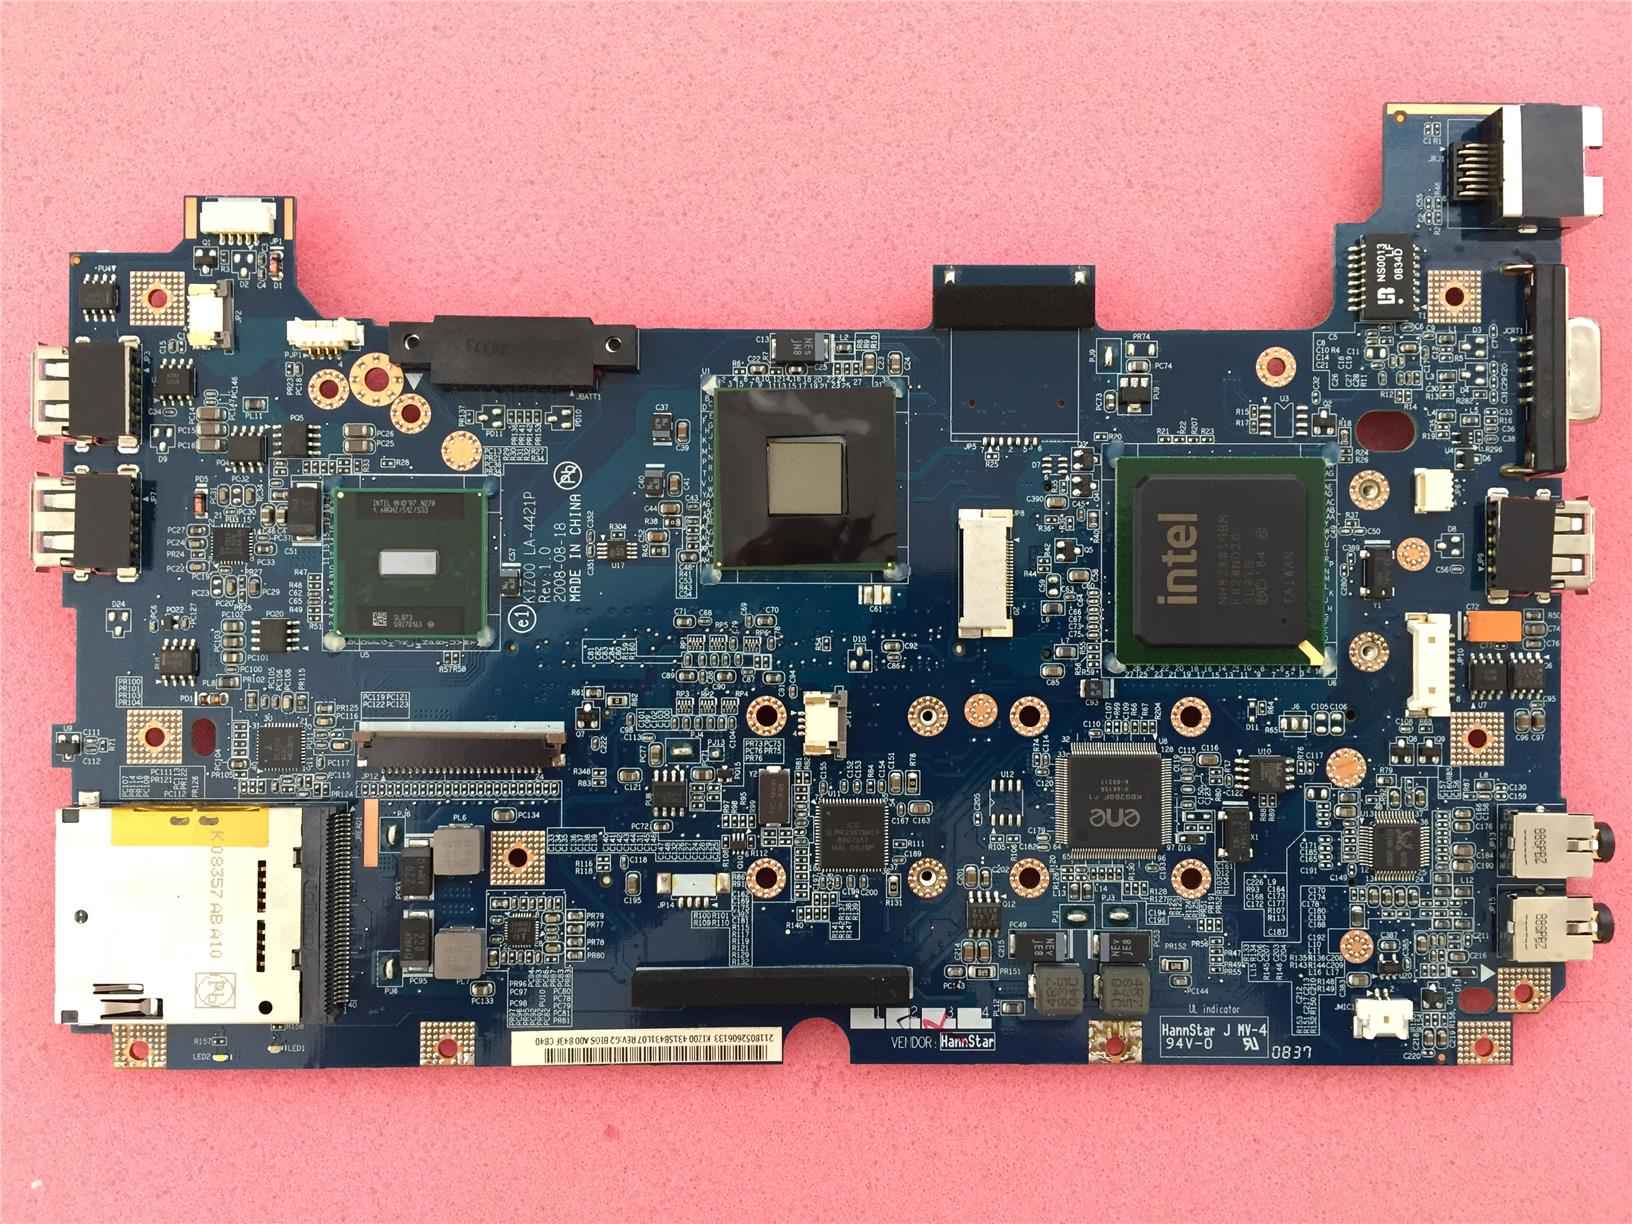 NEW Dell Vostro A90 Laptop System Motherboard J426J 0J426J